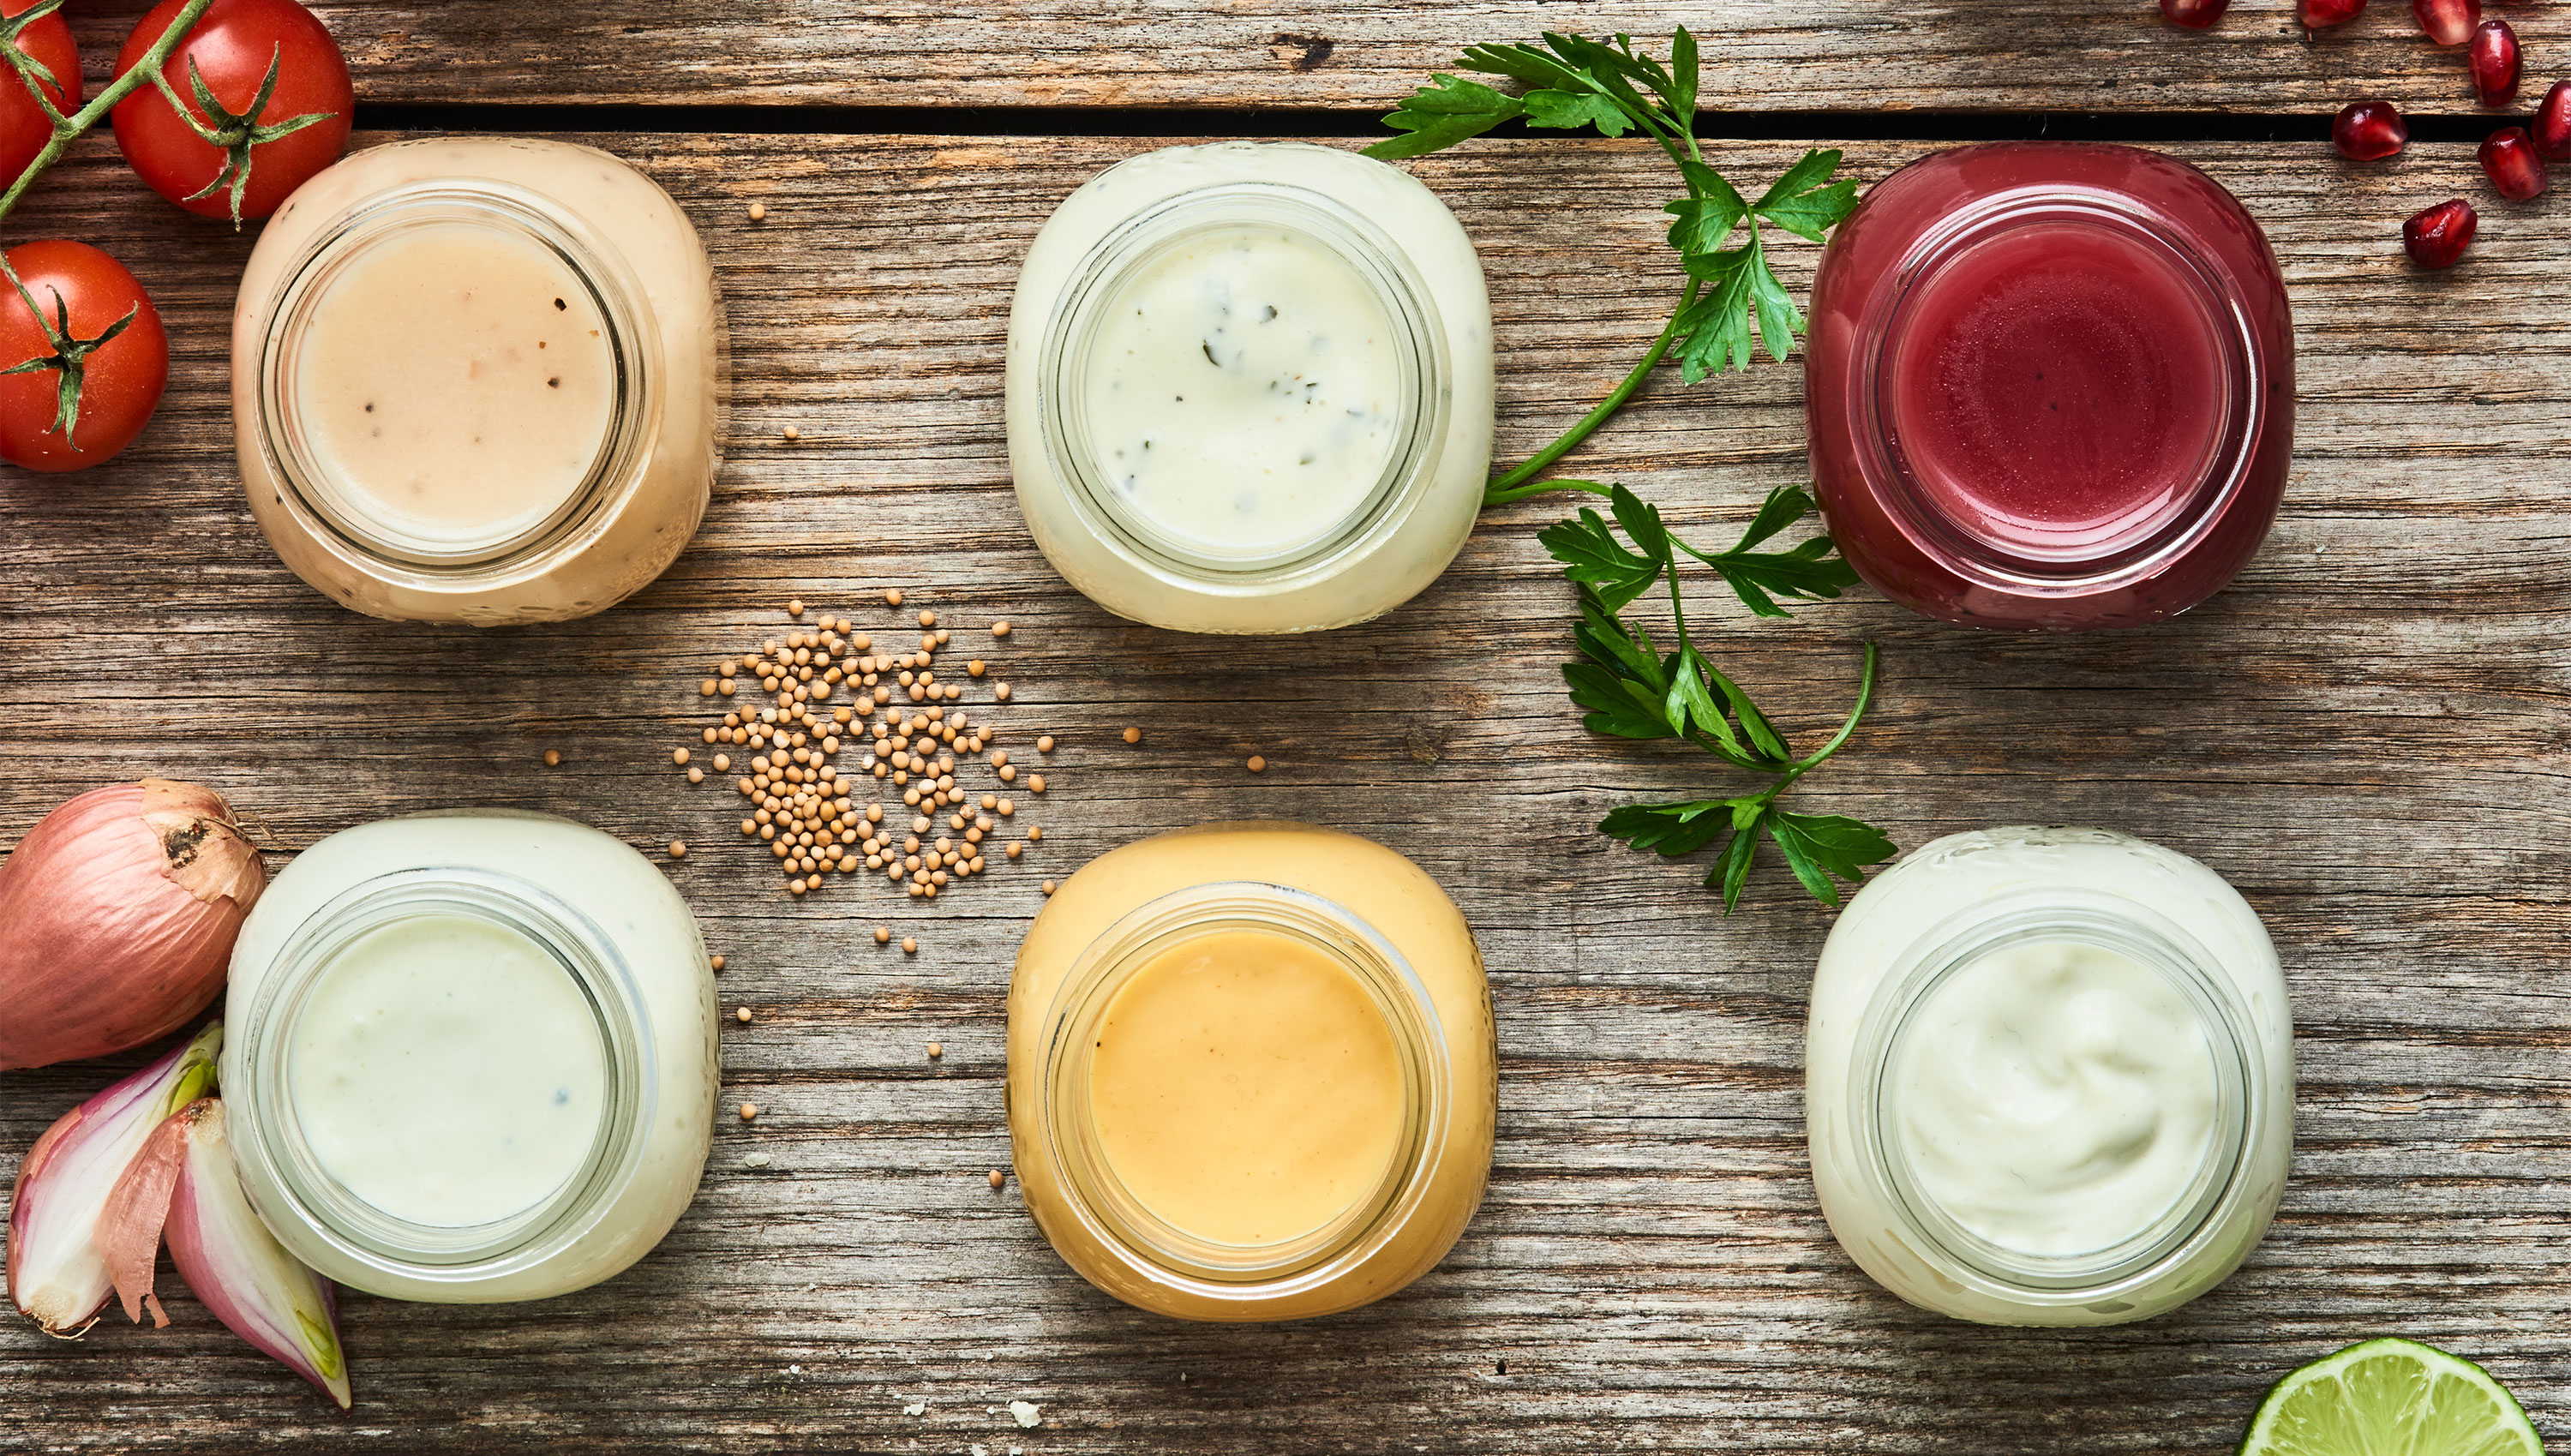 Global Flavors of Marie's Salad Dressings